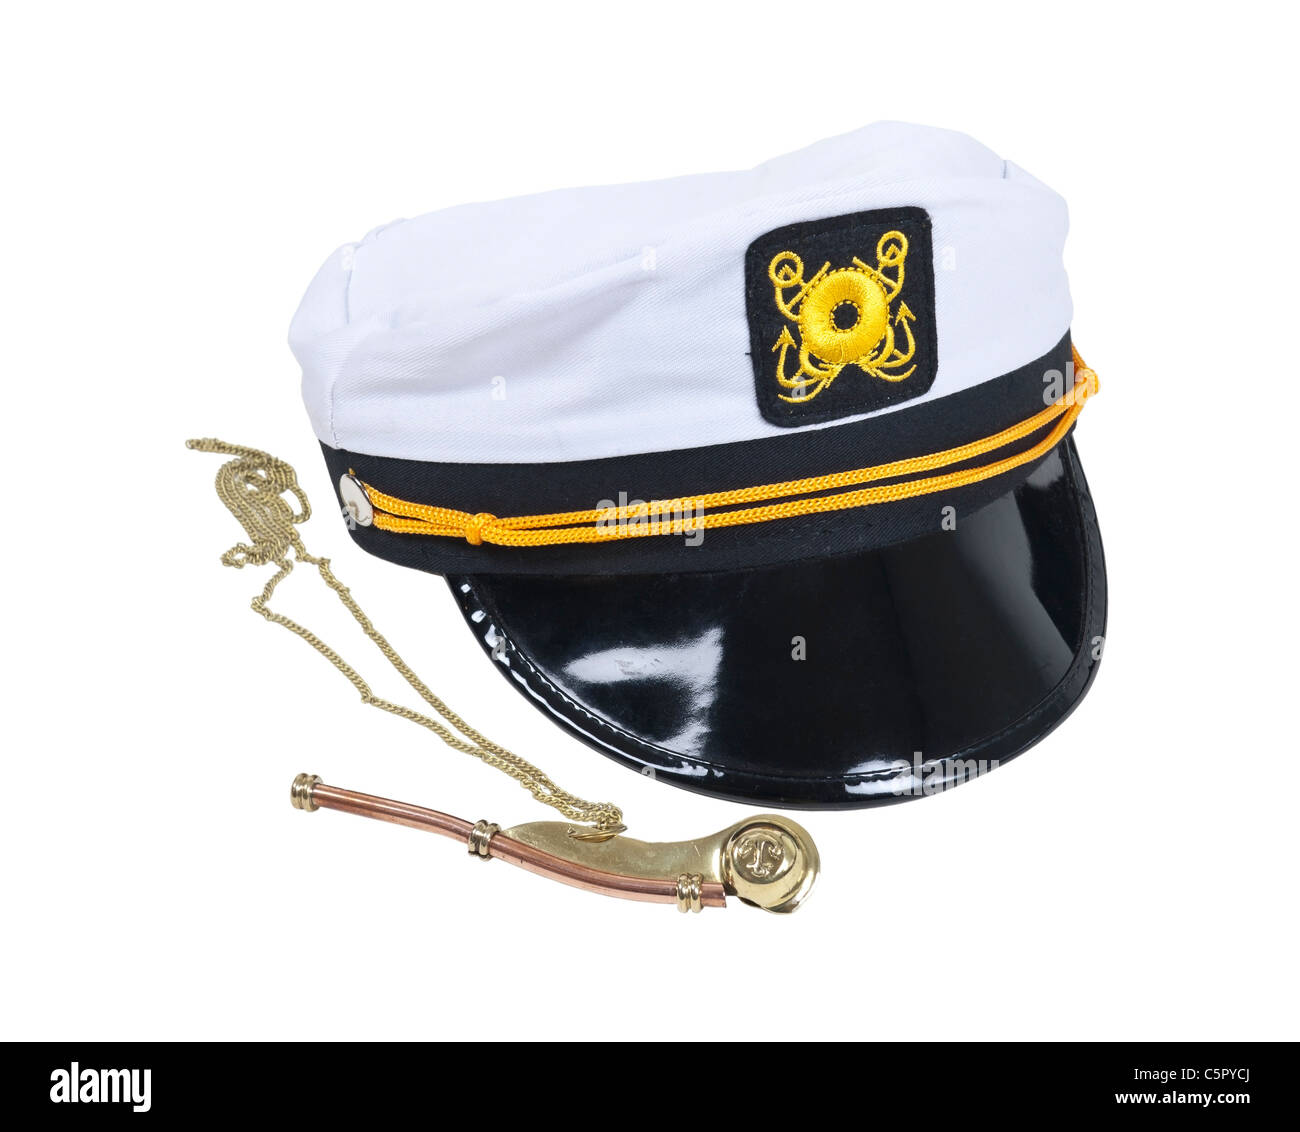 White Nautical hat with black brim and yellow braids with a brass whistle - path included - Stock Image